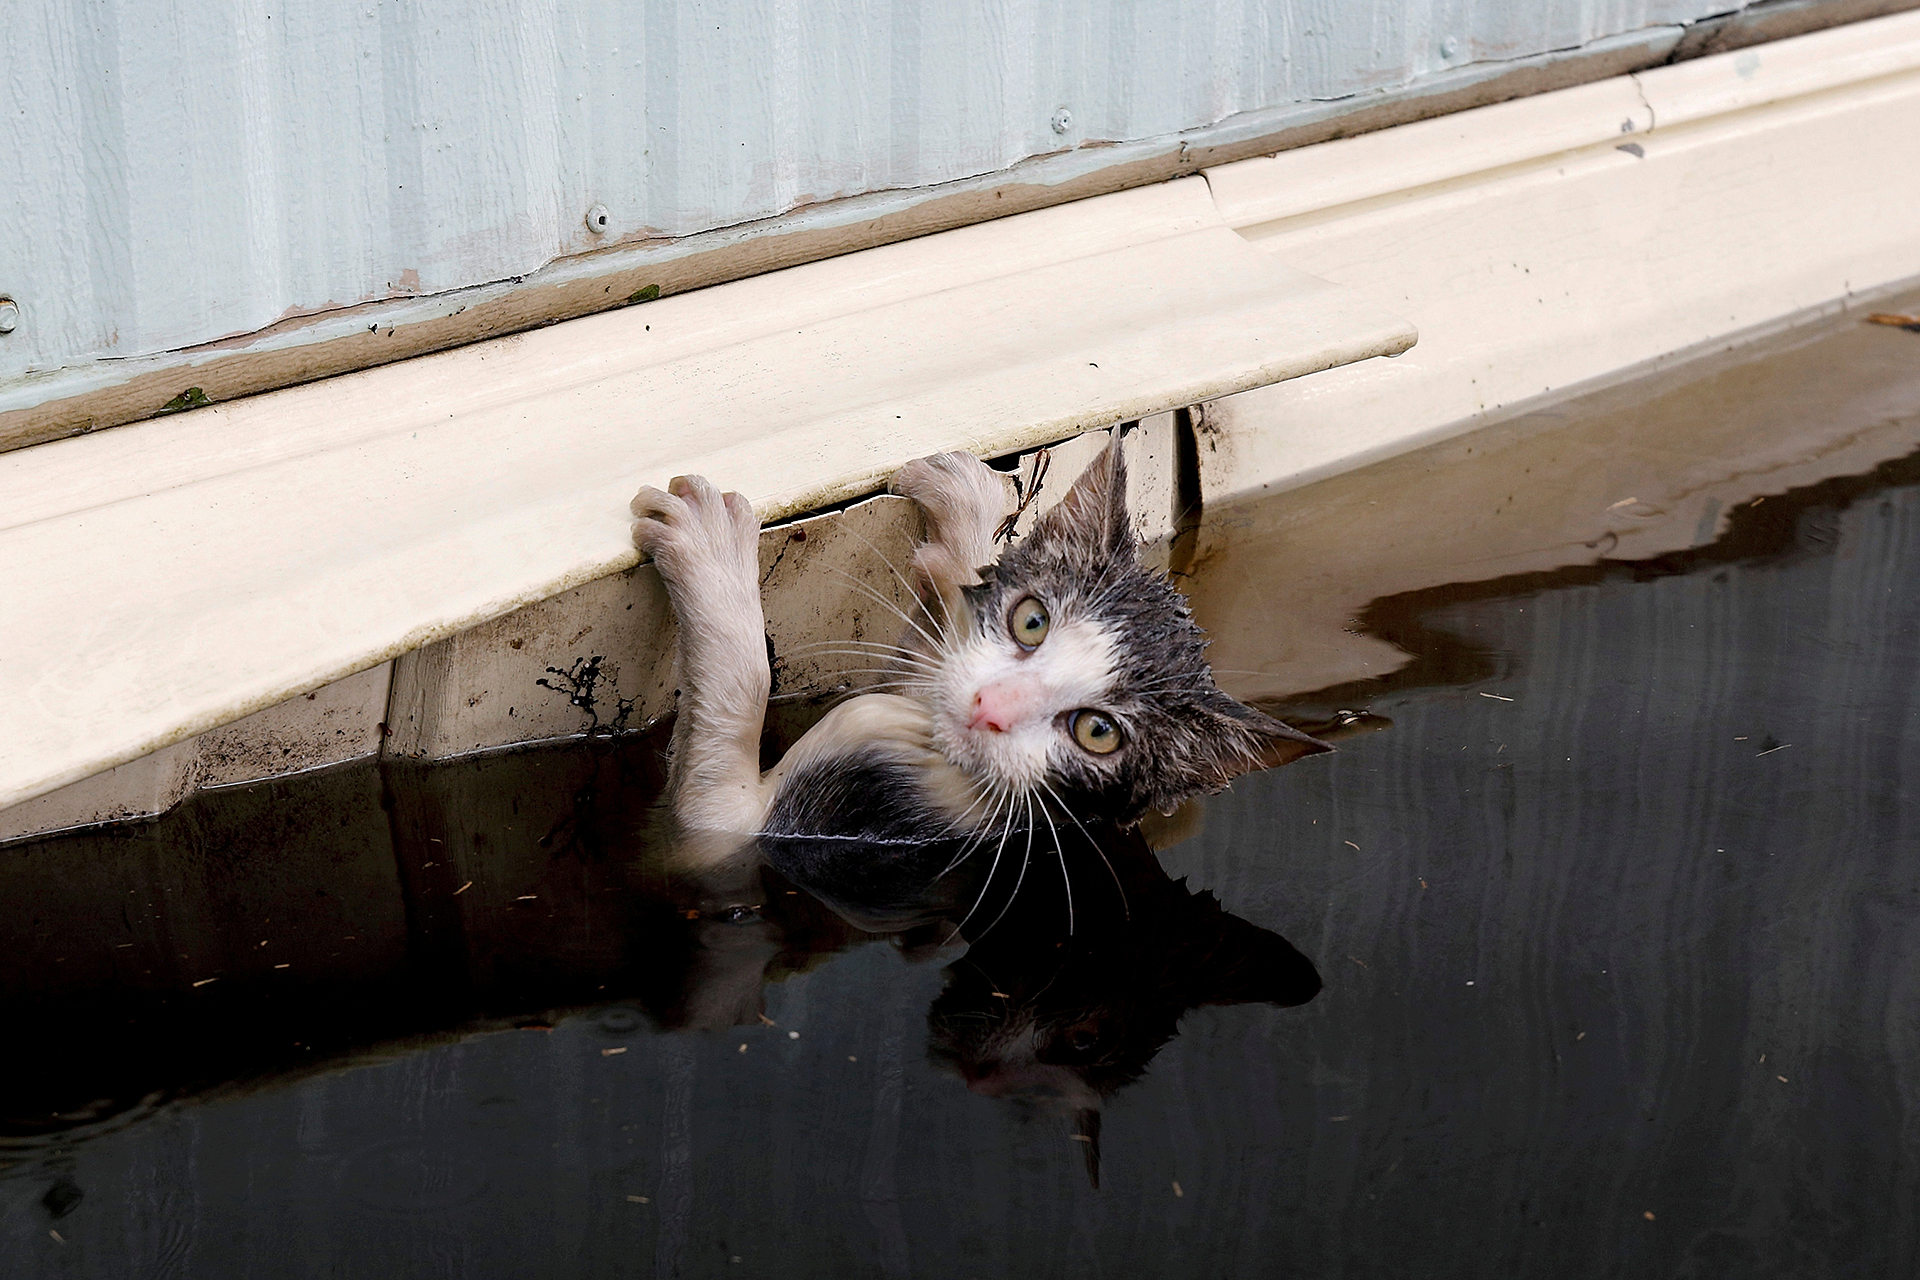 Hurricane Florence: Stranded pets get rescued from floodwaters in North Carolina